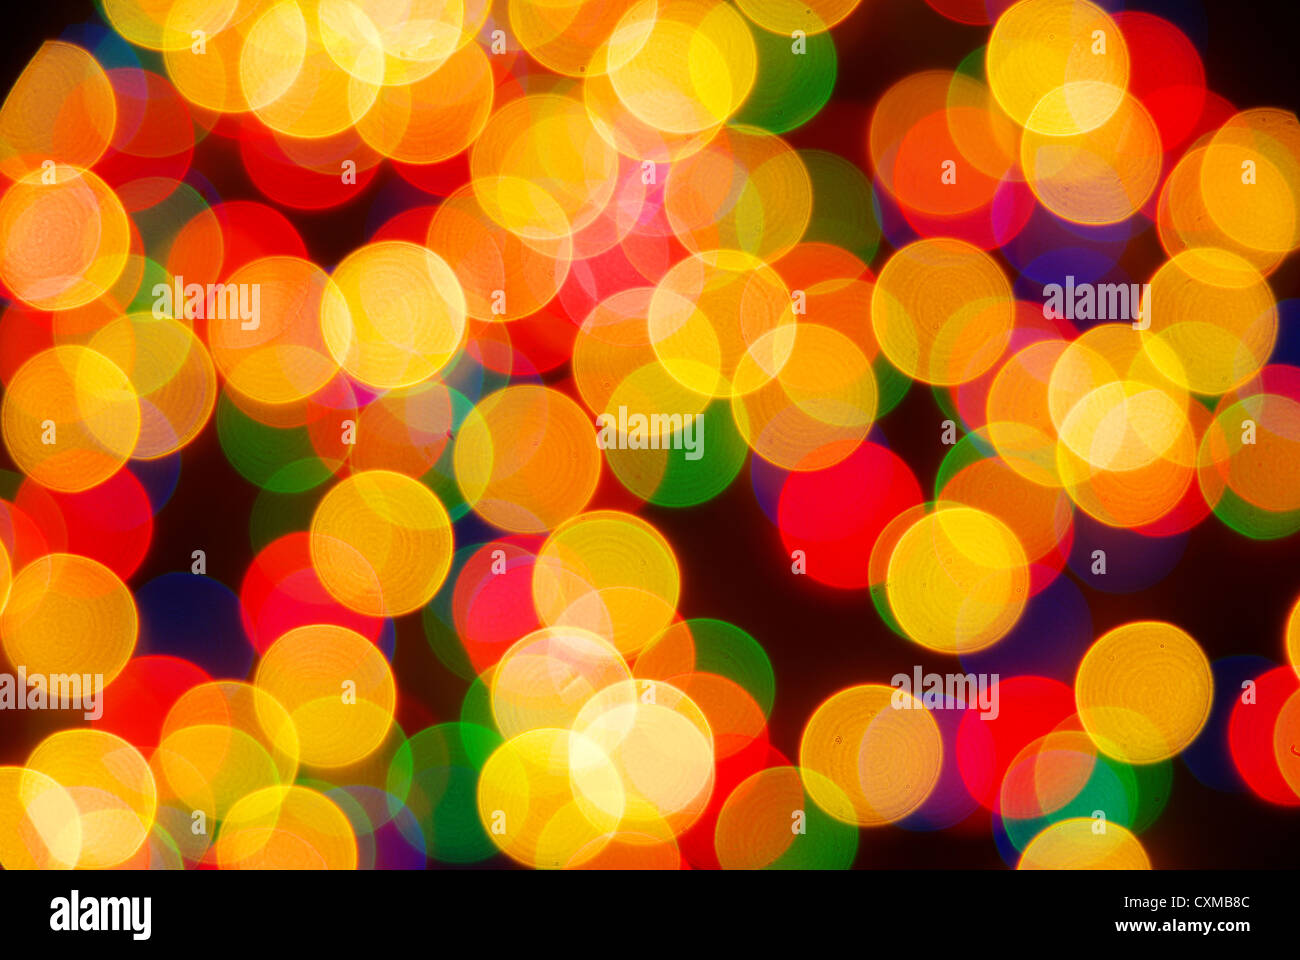 Abstract christmas lights as background on black - Stock Image